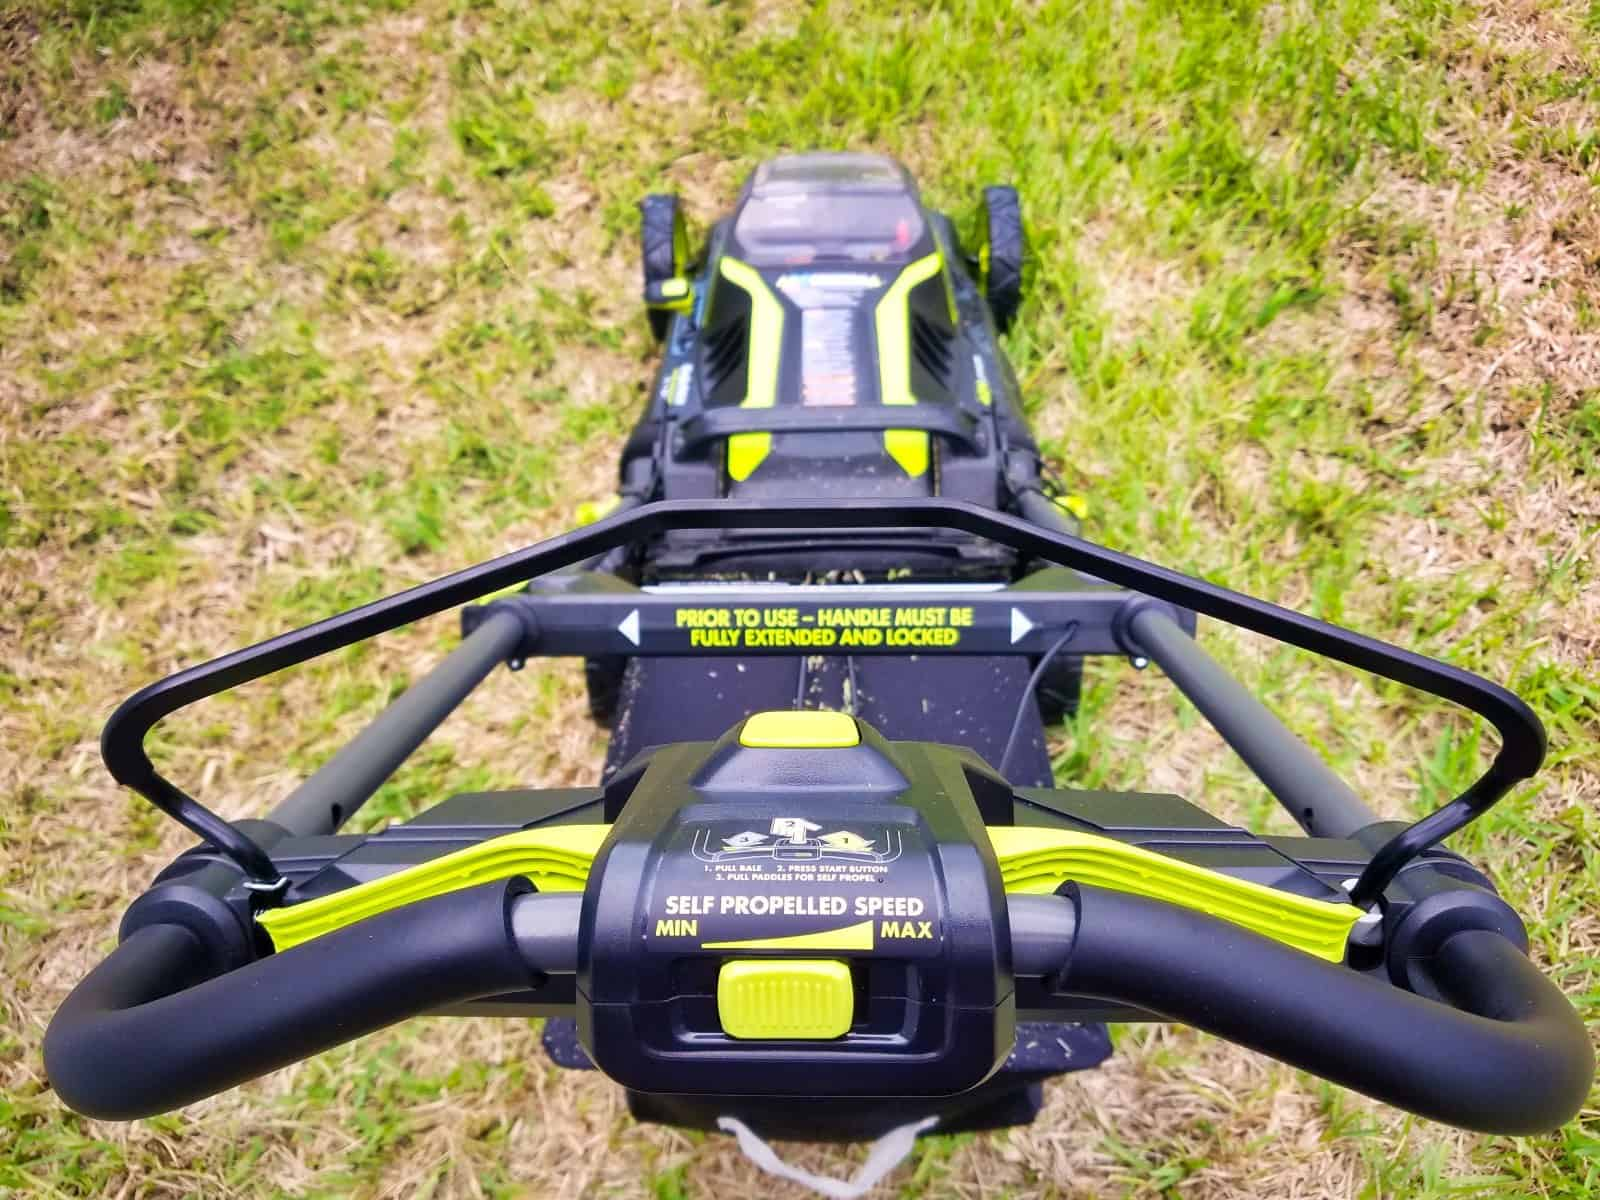 ryobi 40v cordless lawn mower review with photos and video. Black Bedroom Furniture Sets. Home Design Ideas